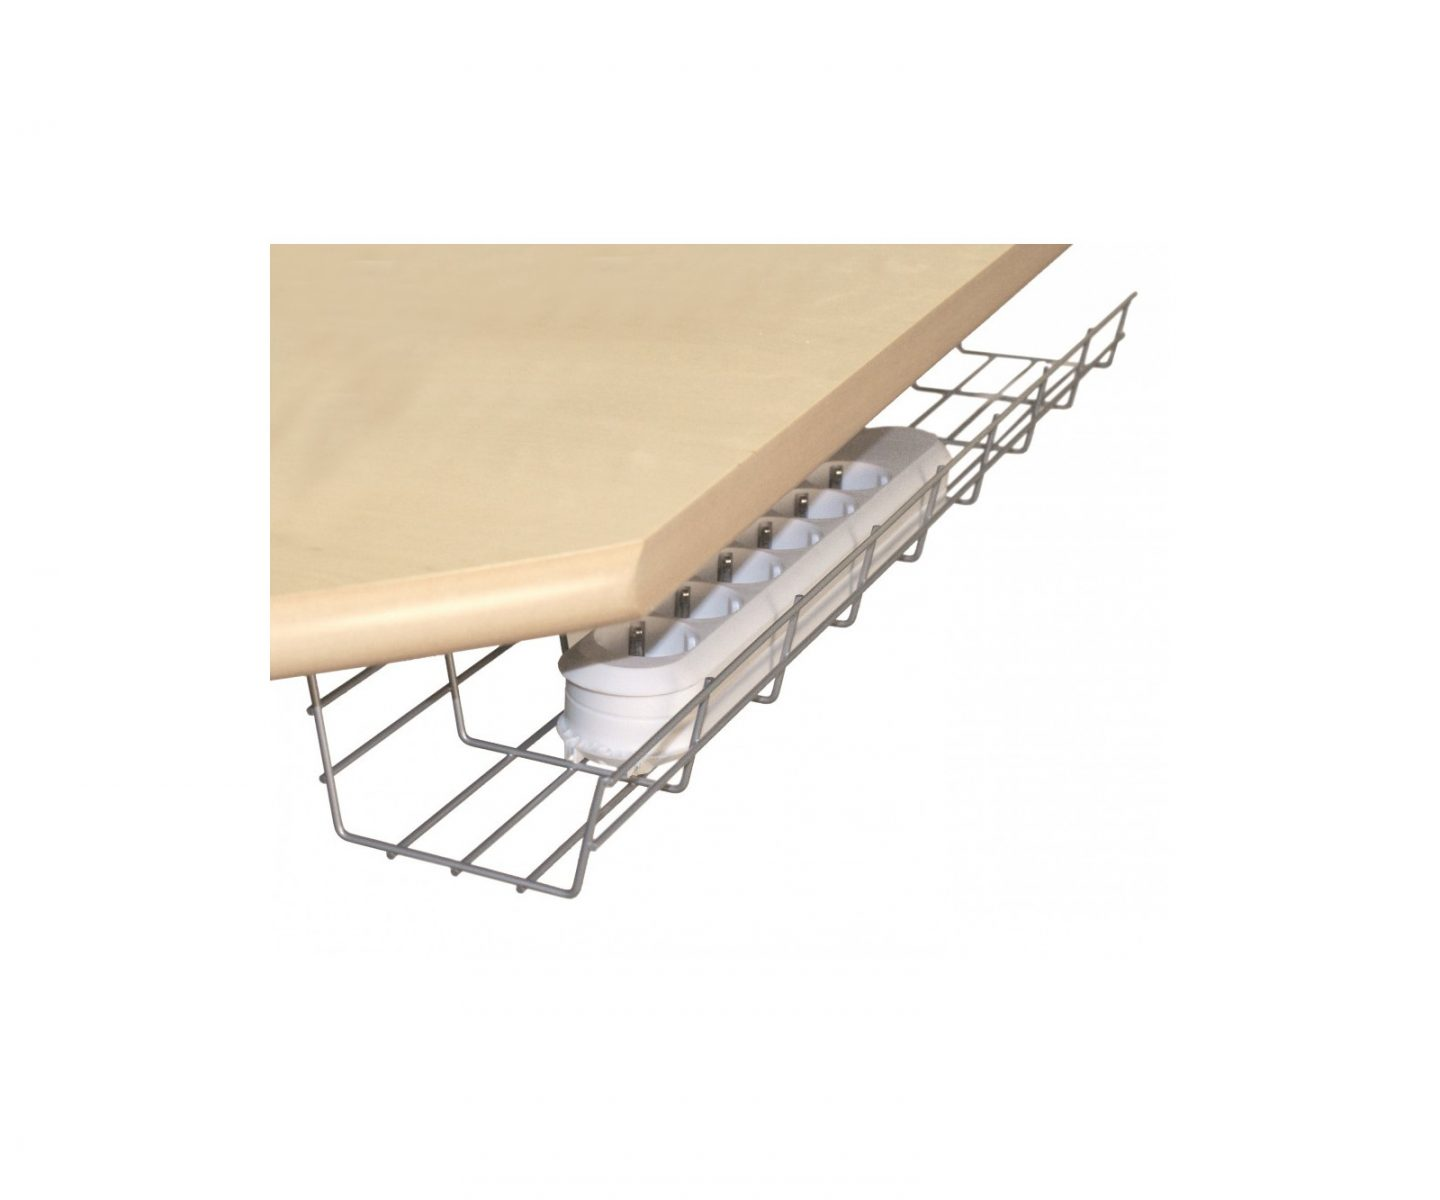 Accessories for tables